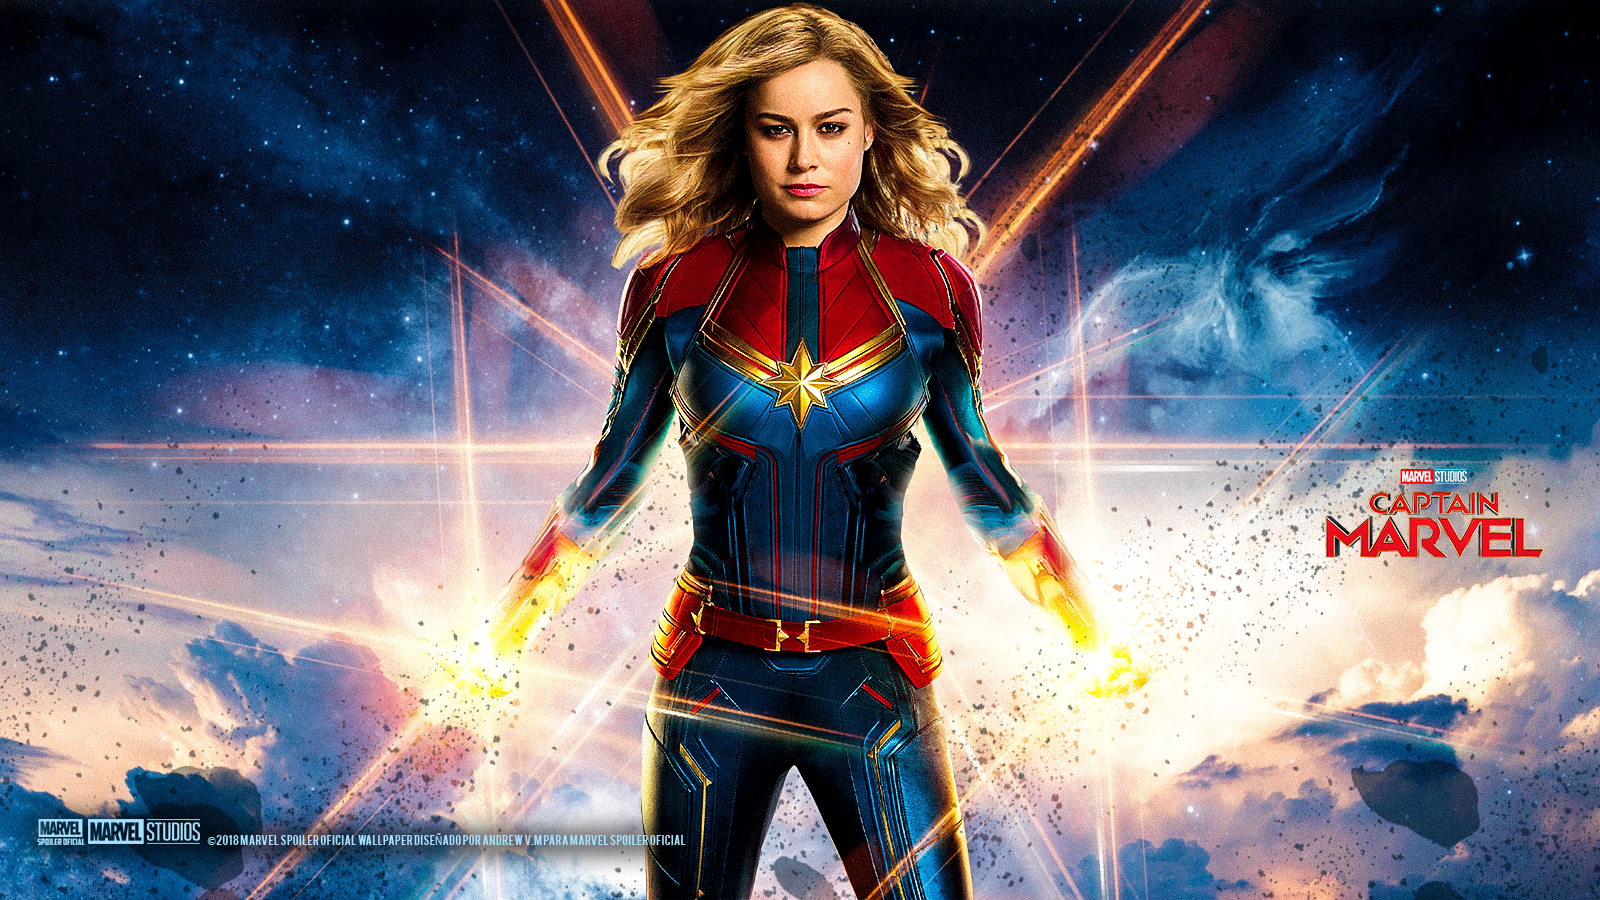 captain marvel hd wallpapers download in 4k - whats images